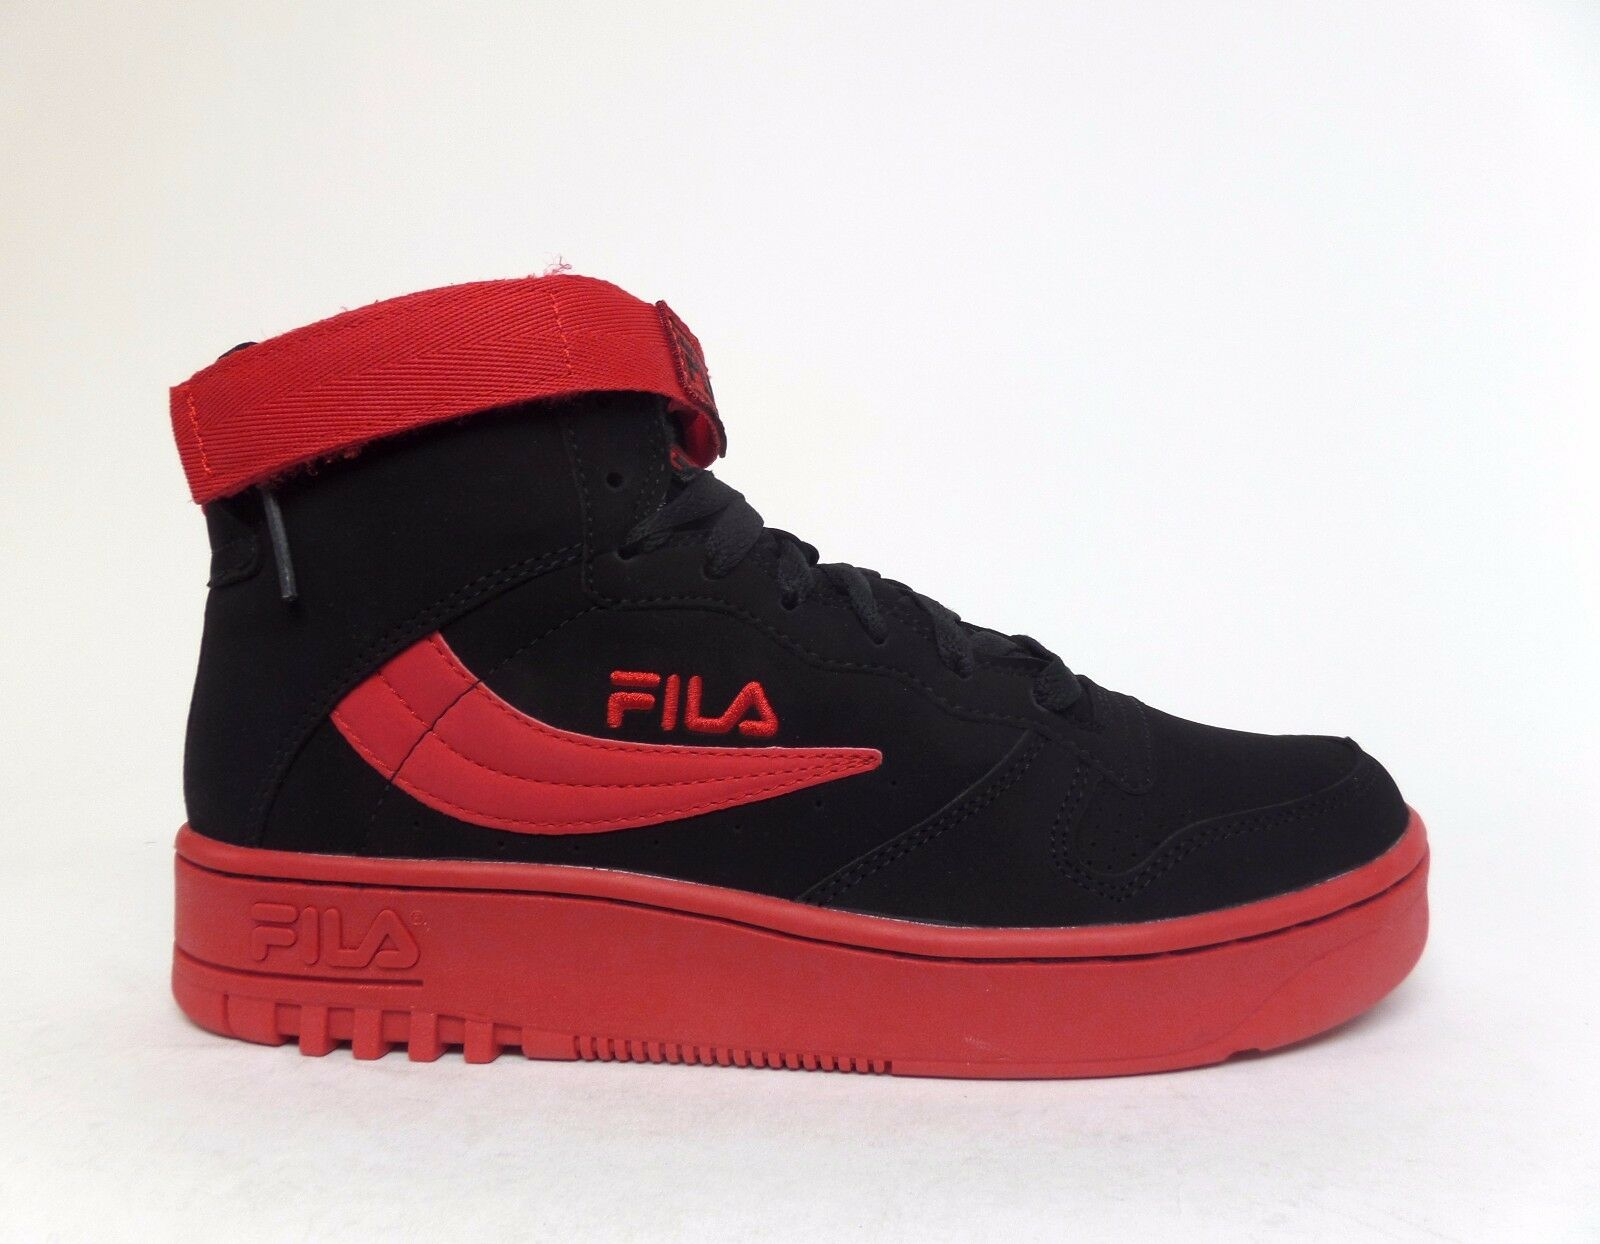 FILA Men's FX-100 HIGH-TOP Shoes Black/Red 1VB90151-023 a Special limited time